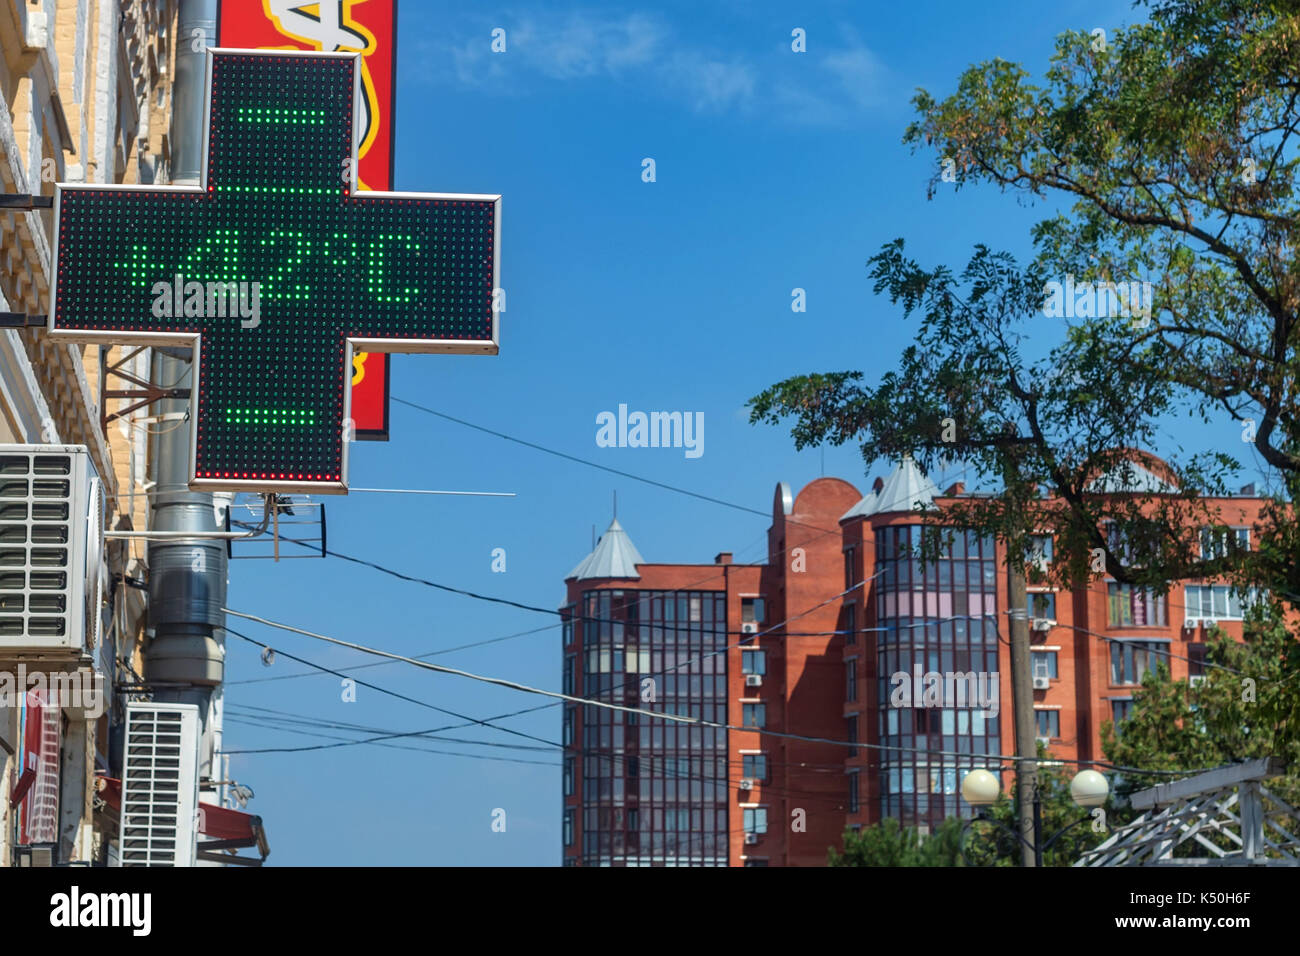 Thermometer on summer heat in city - Stock Image